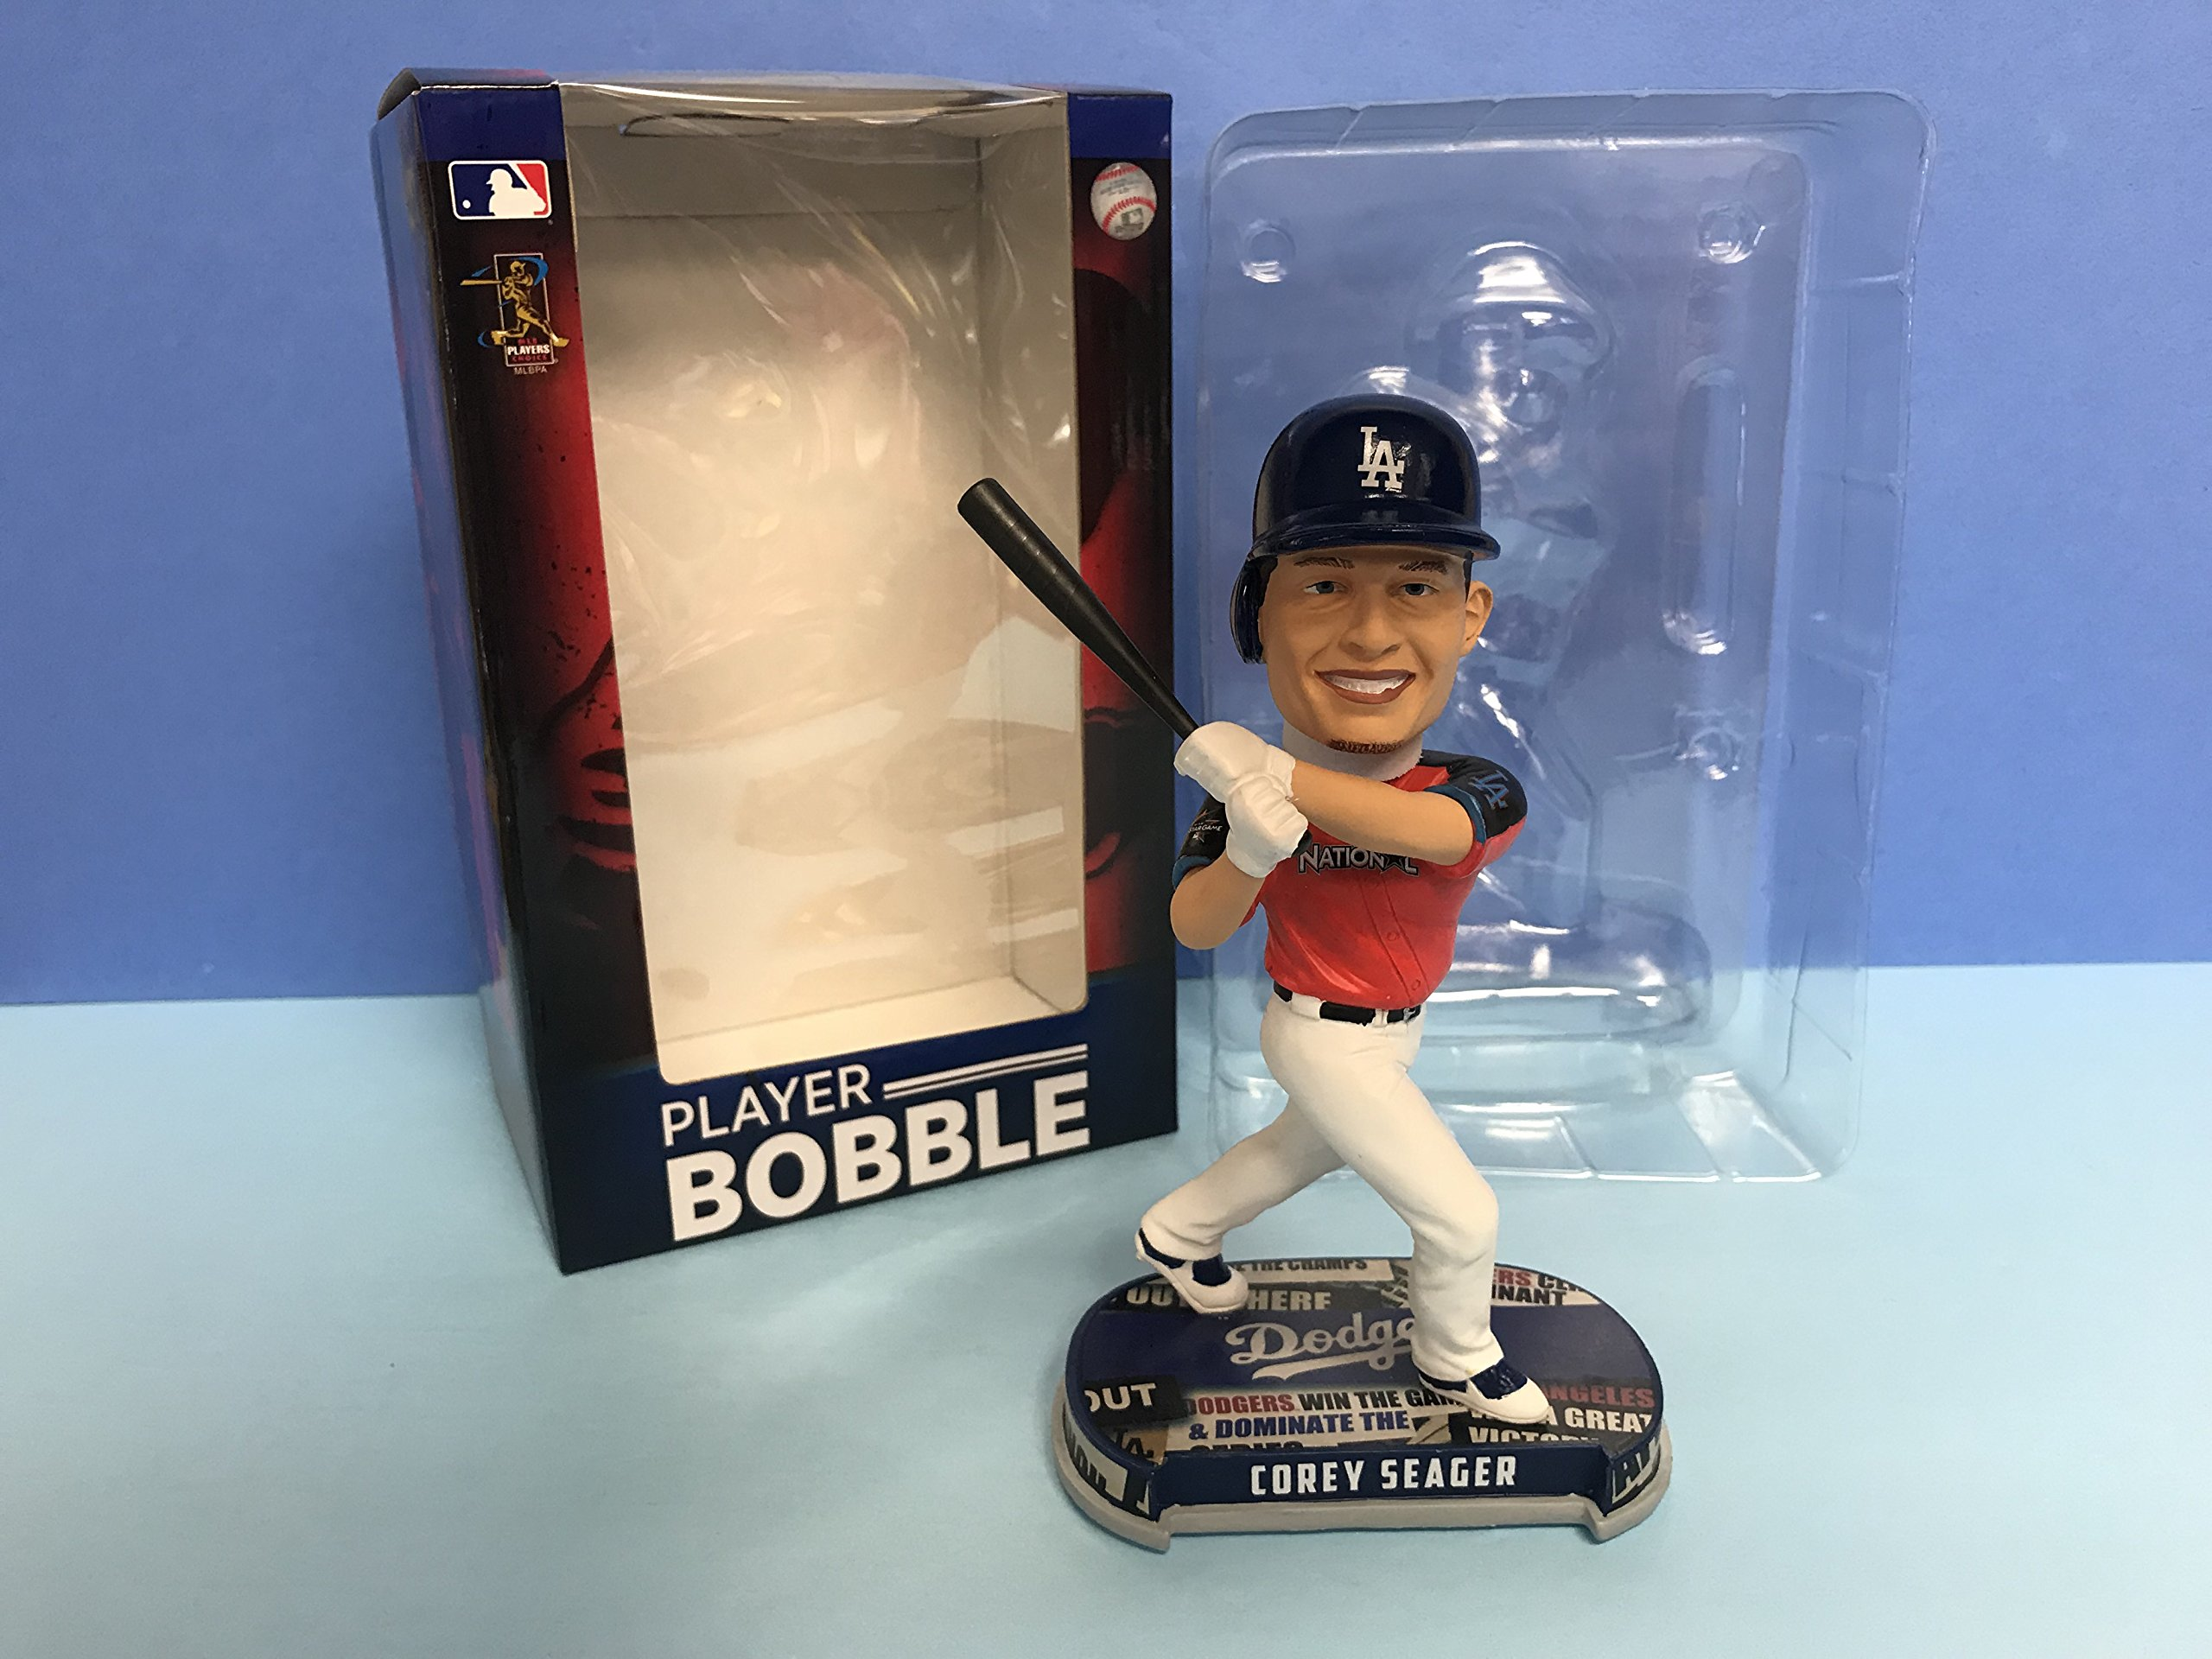 Corey Seager 2017 All Star Los Angeles Dodgers Limited Edition Bobblehead 1 of 360 produced